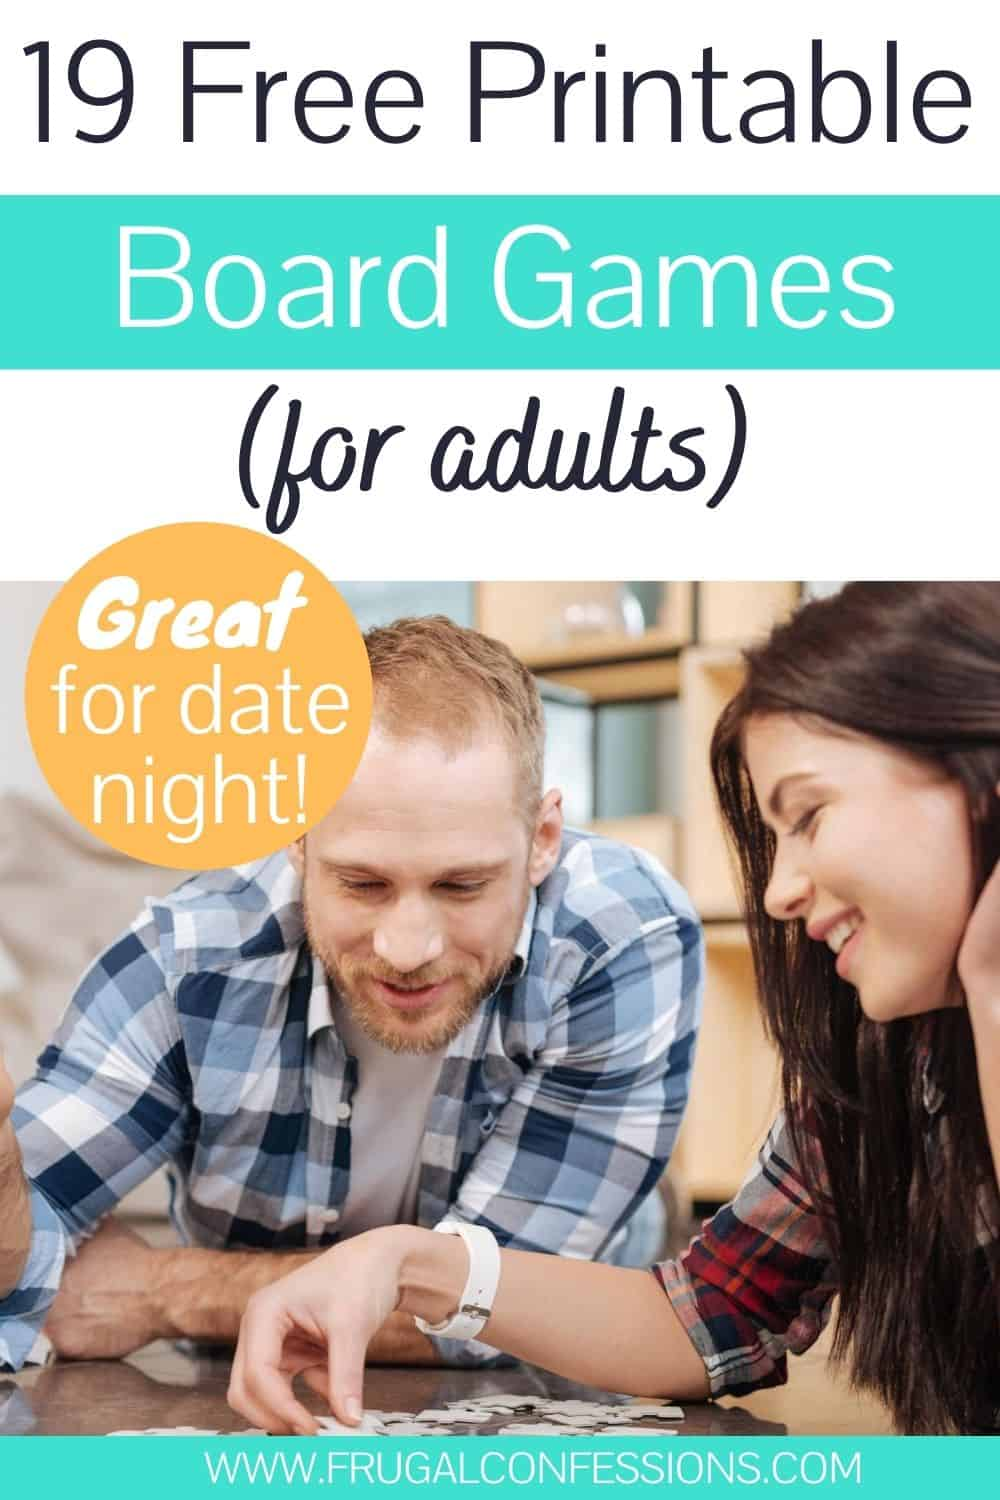 couple having fun playing free printable board games for adults on dining room table